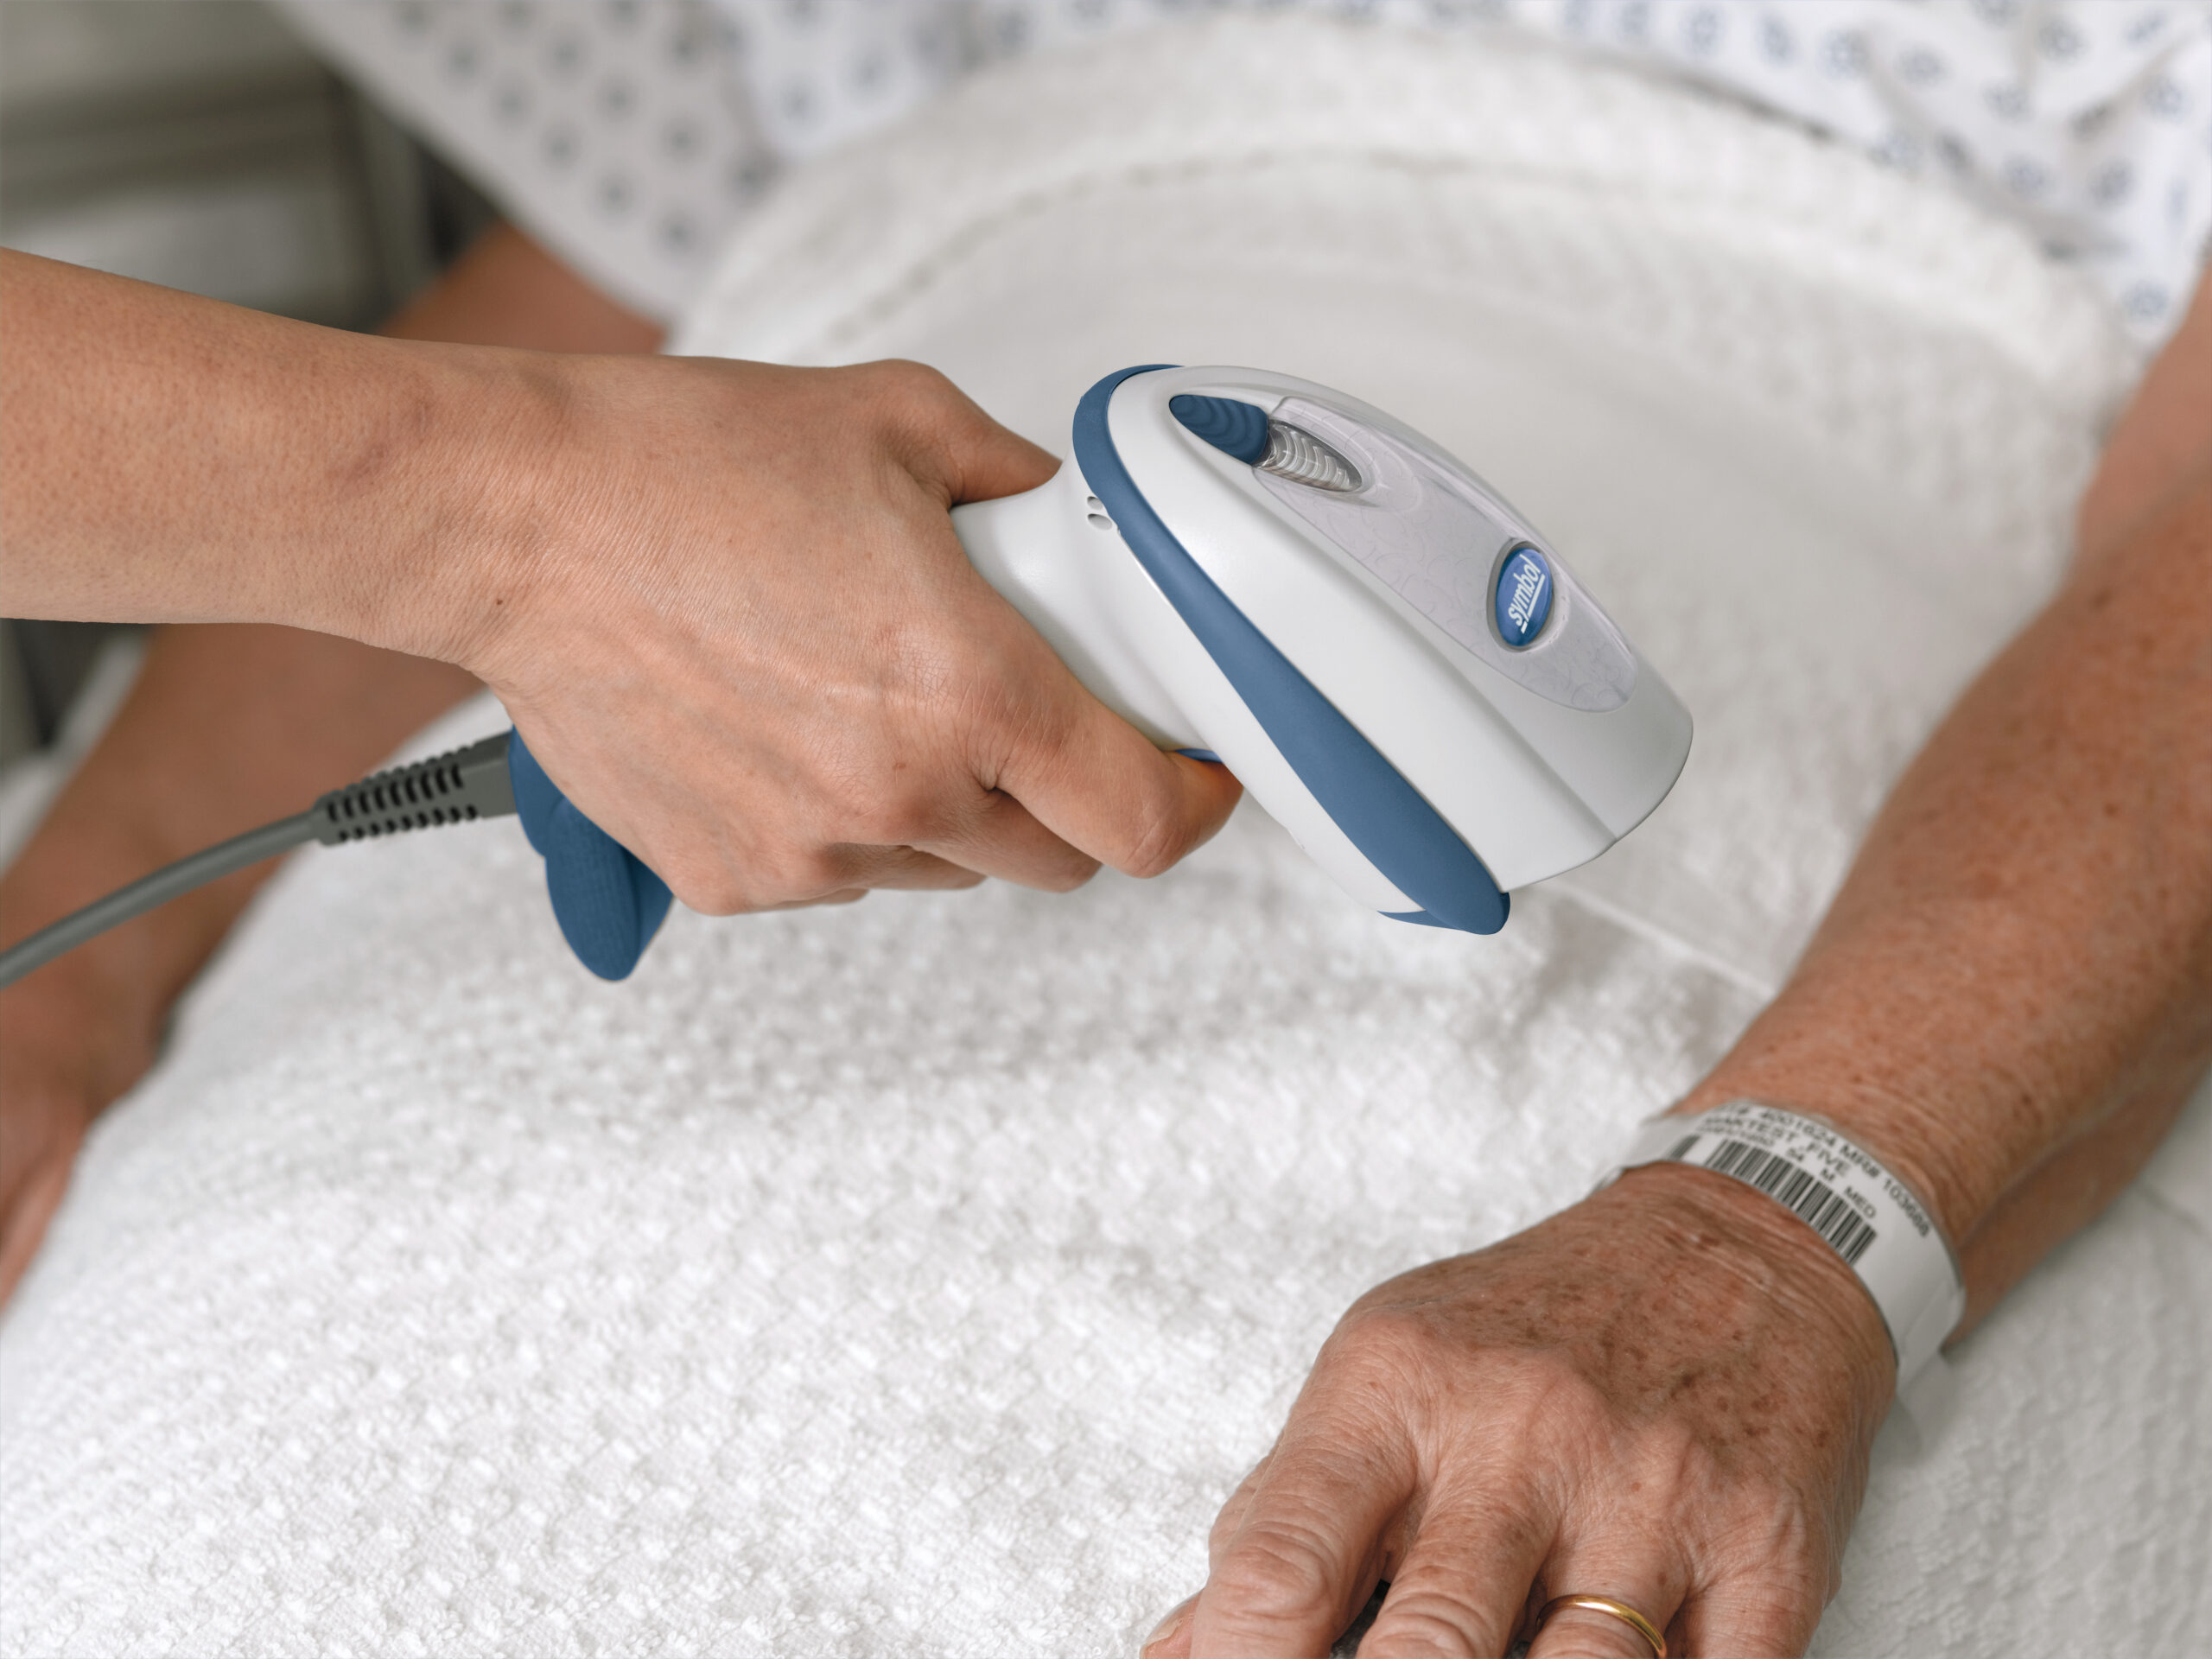 Patient Positive Id Using Patient Wristband Barcode & Scanner